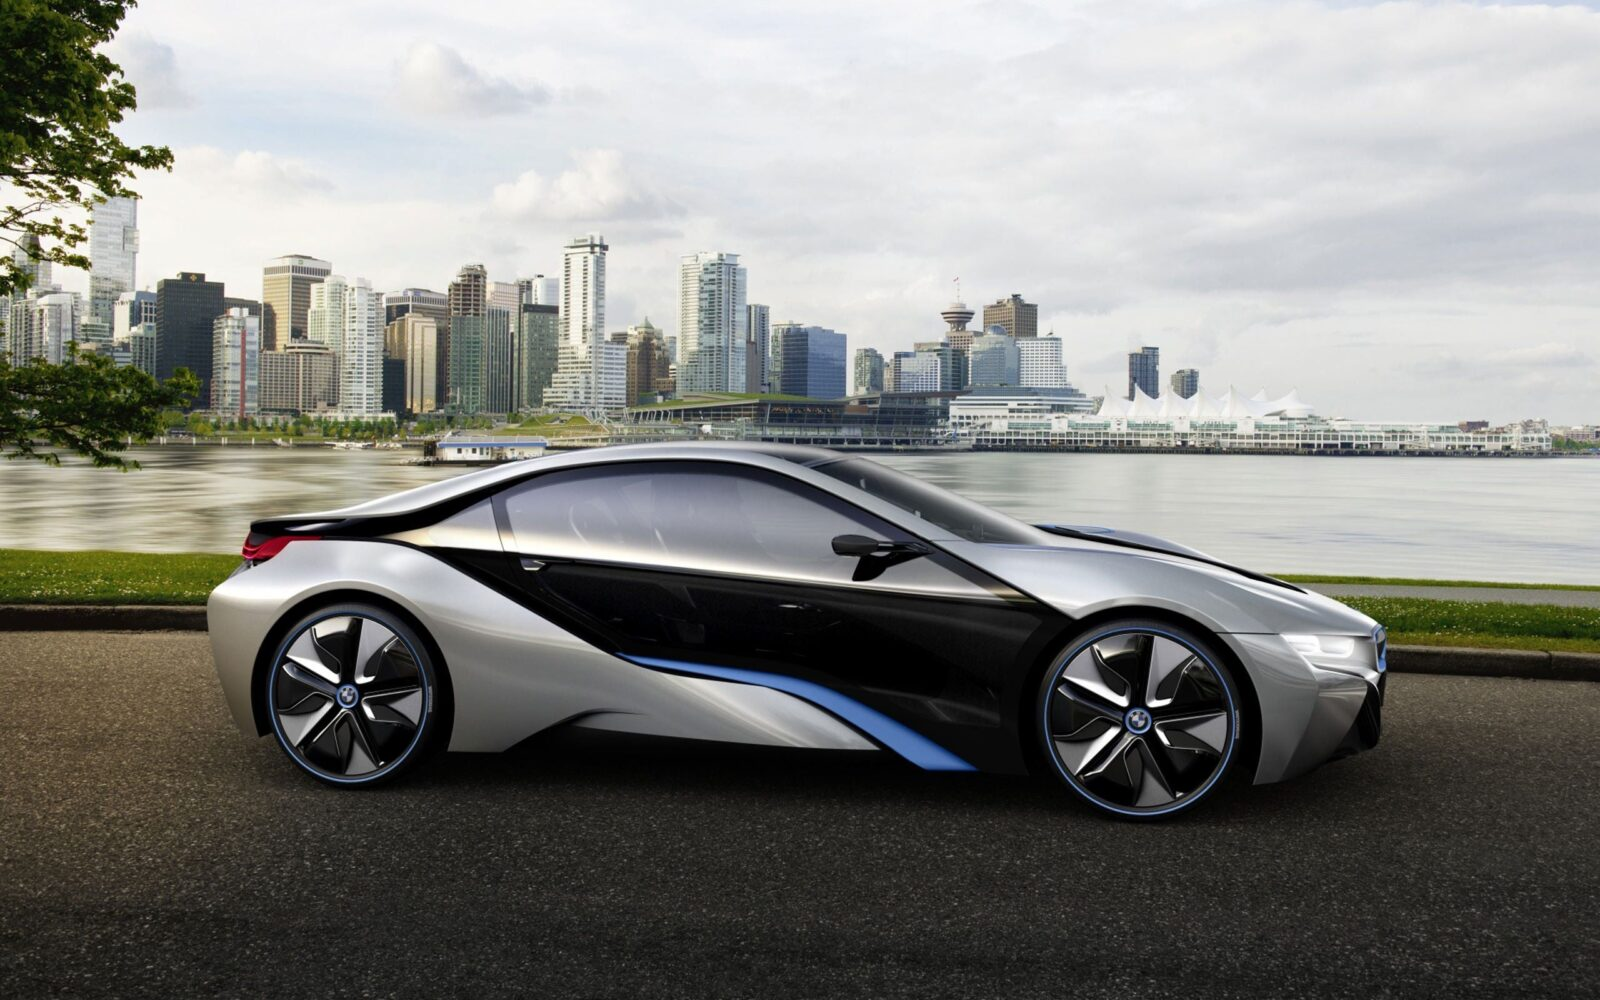 Silver Black Bmw I8 High Quality Wallpapers